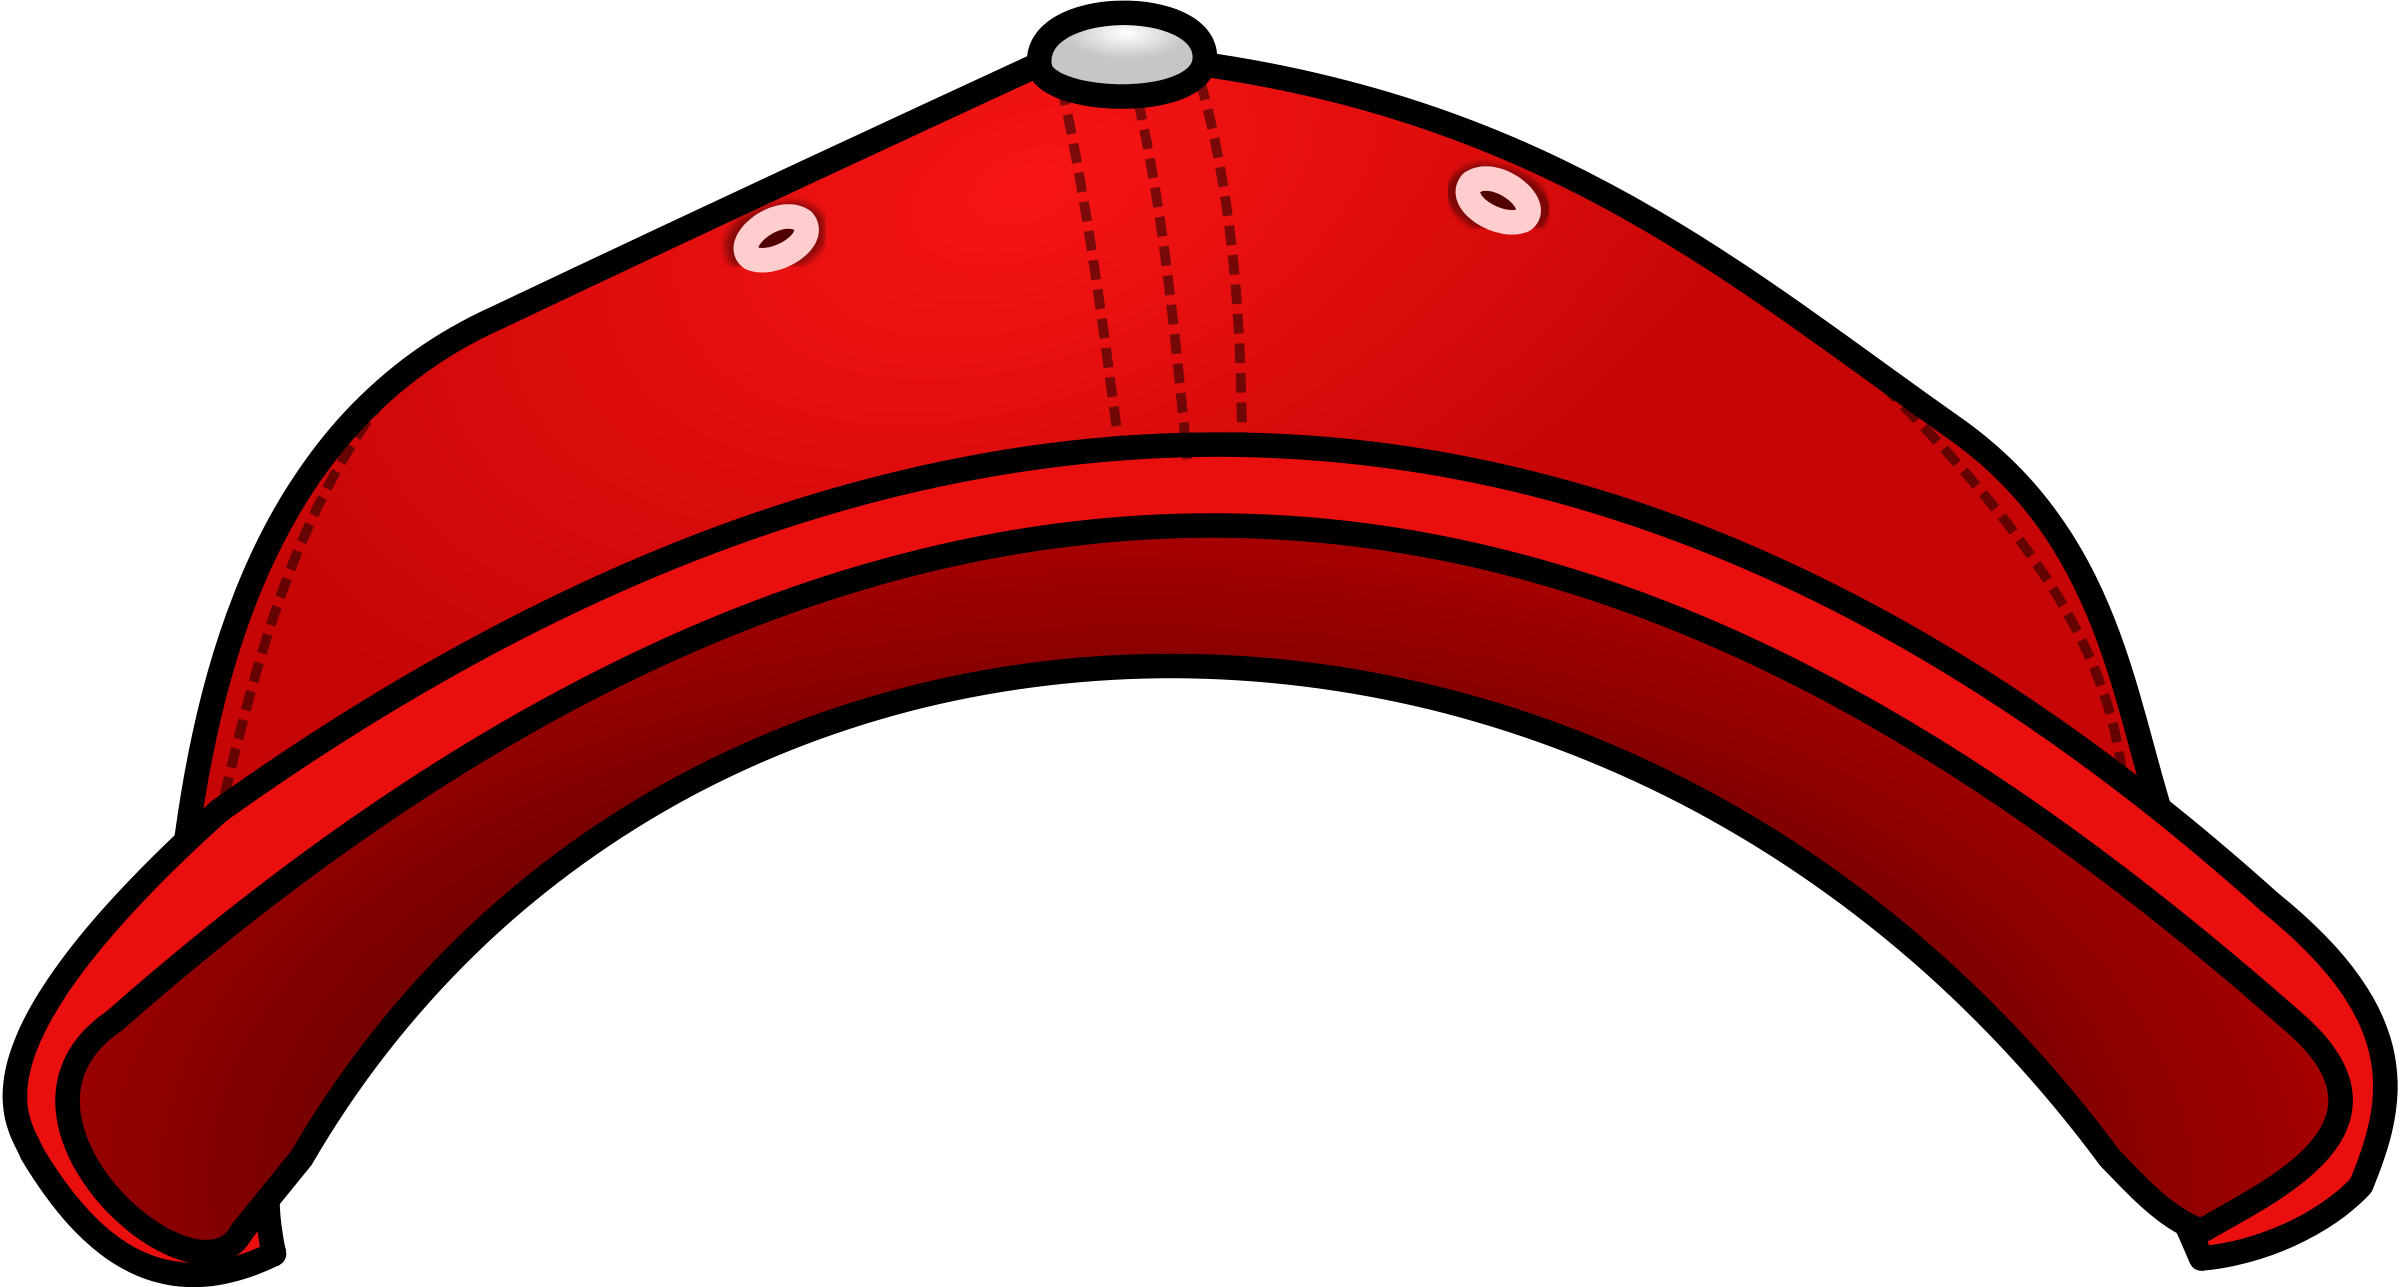 Pictures Of Baseball Caps - Baseball Cap Front View (2400x1287)